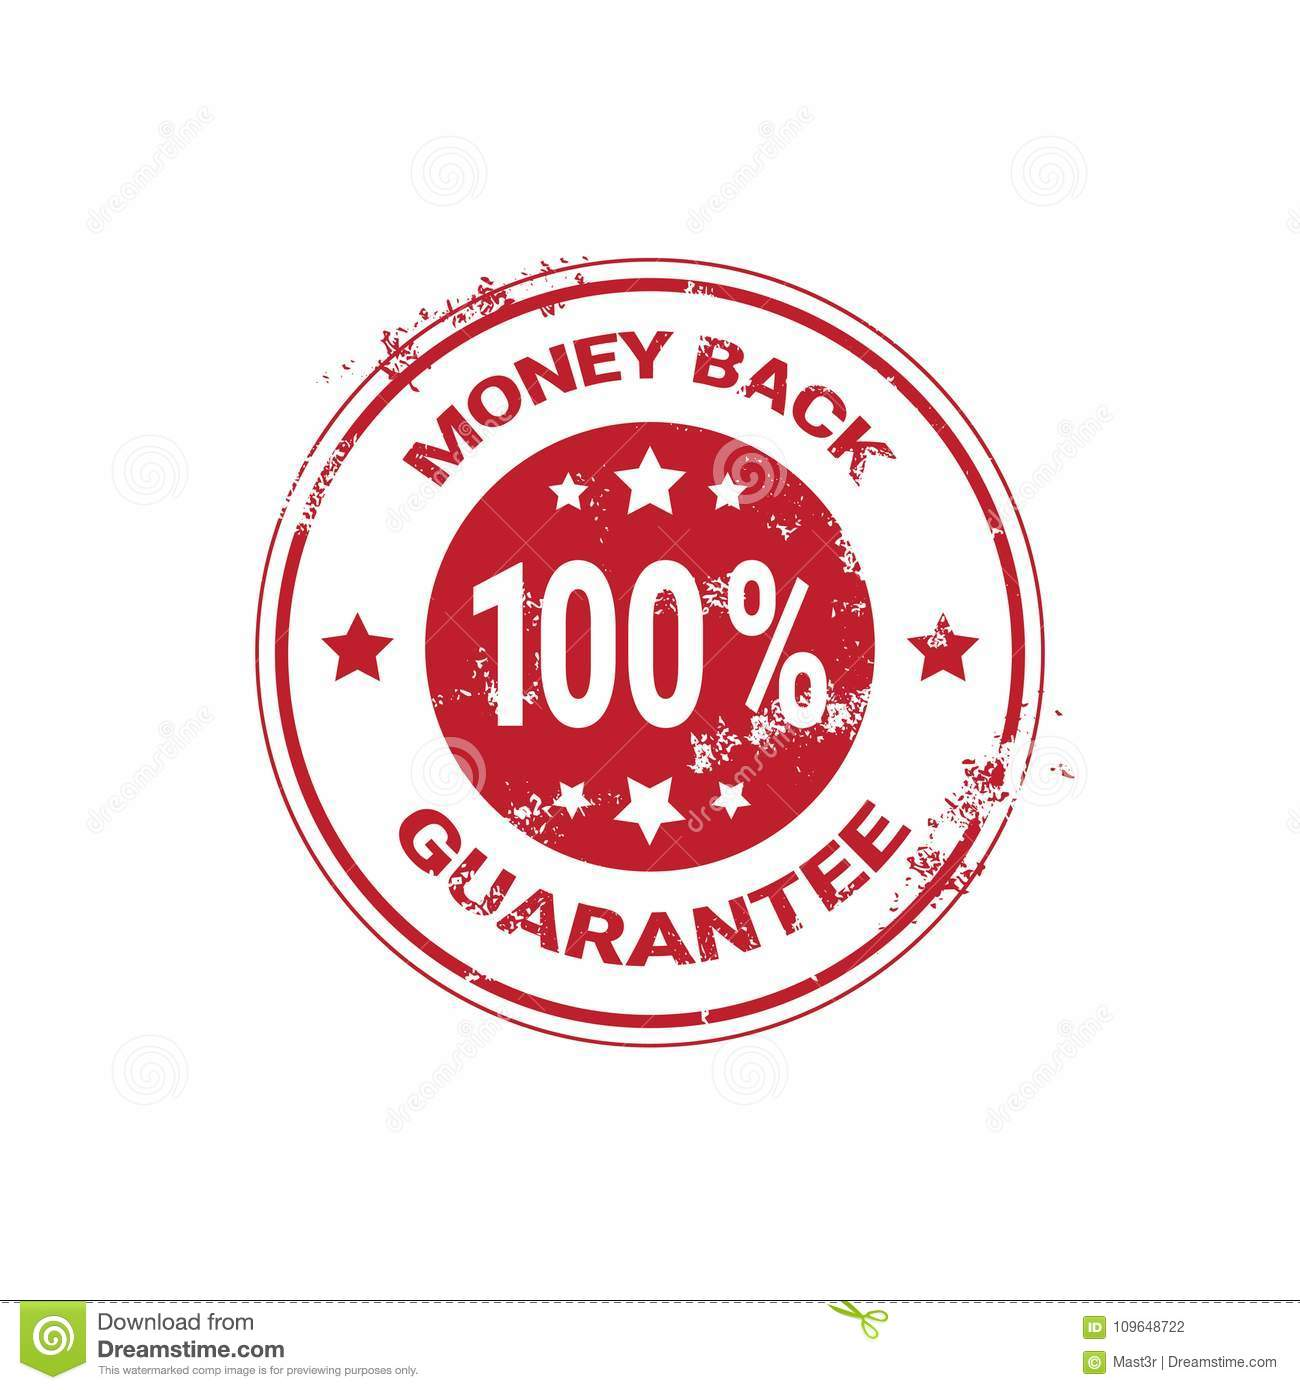 Money Back Guarantee Grunge Red Sticker Or Stamp Template Isolated